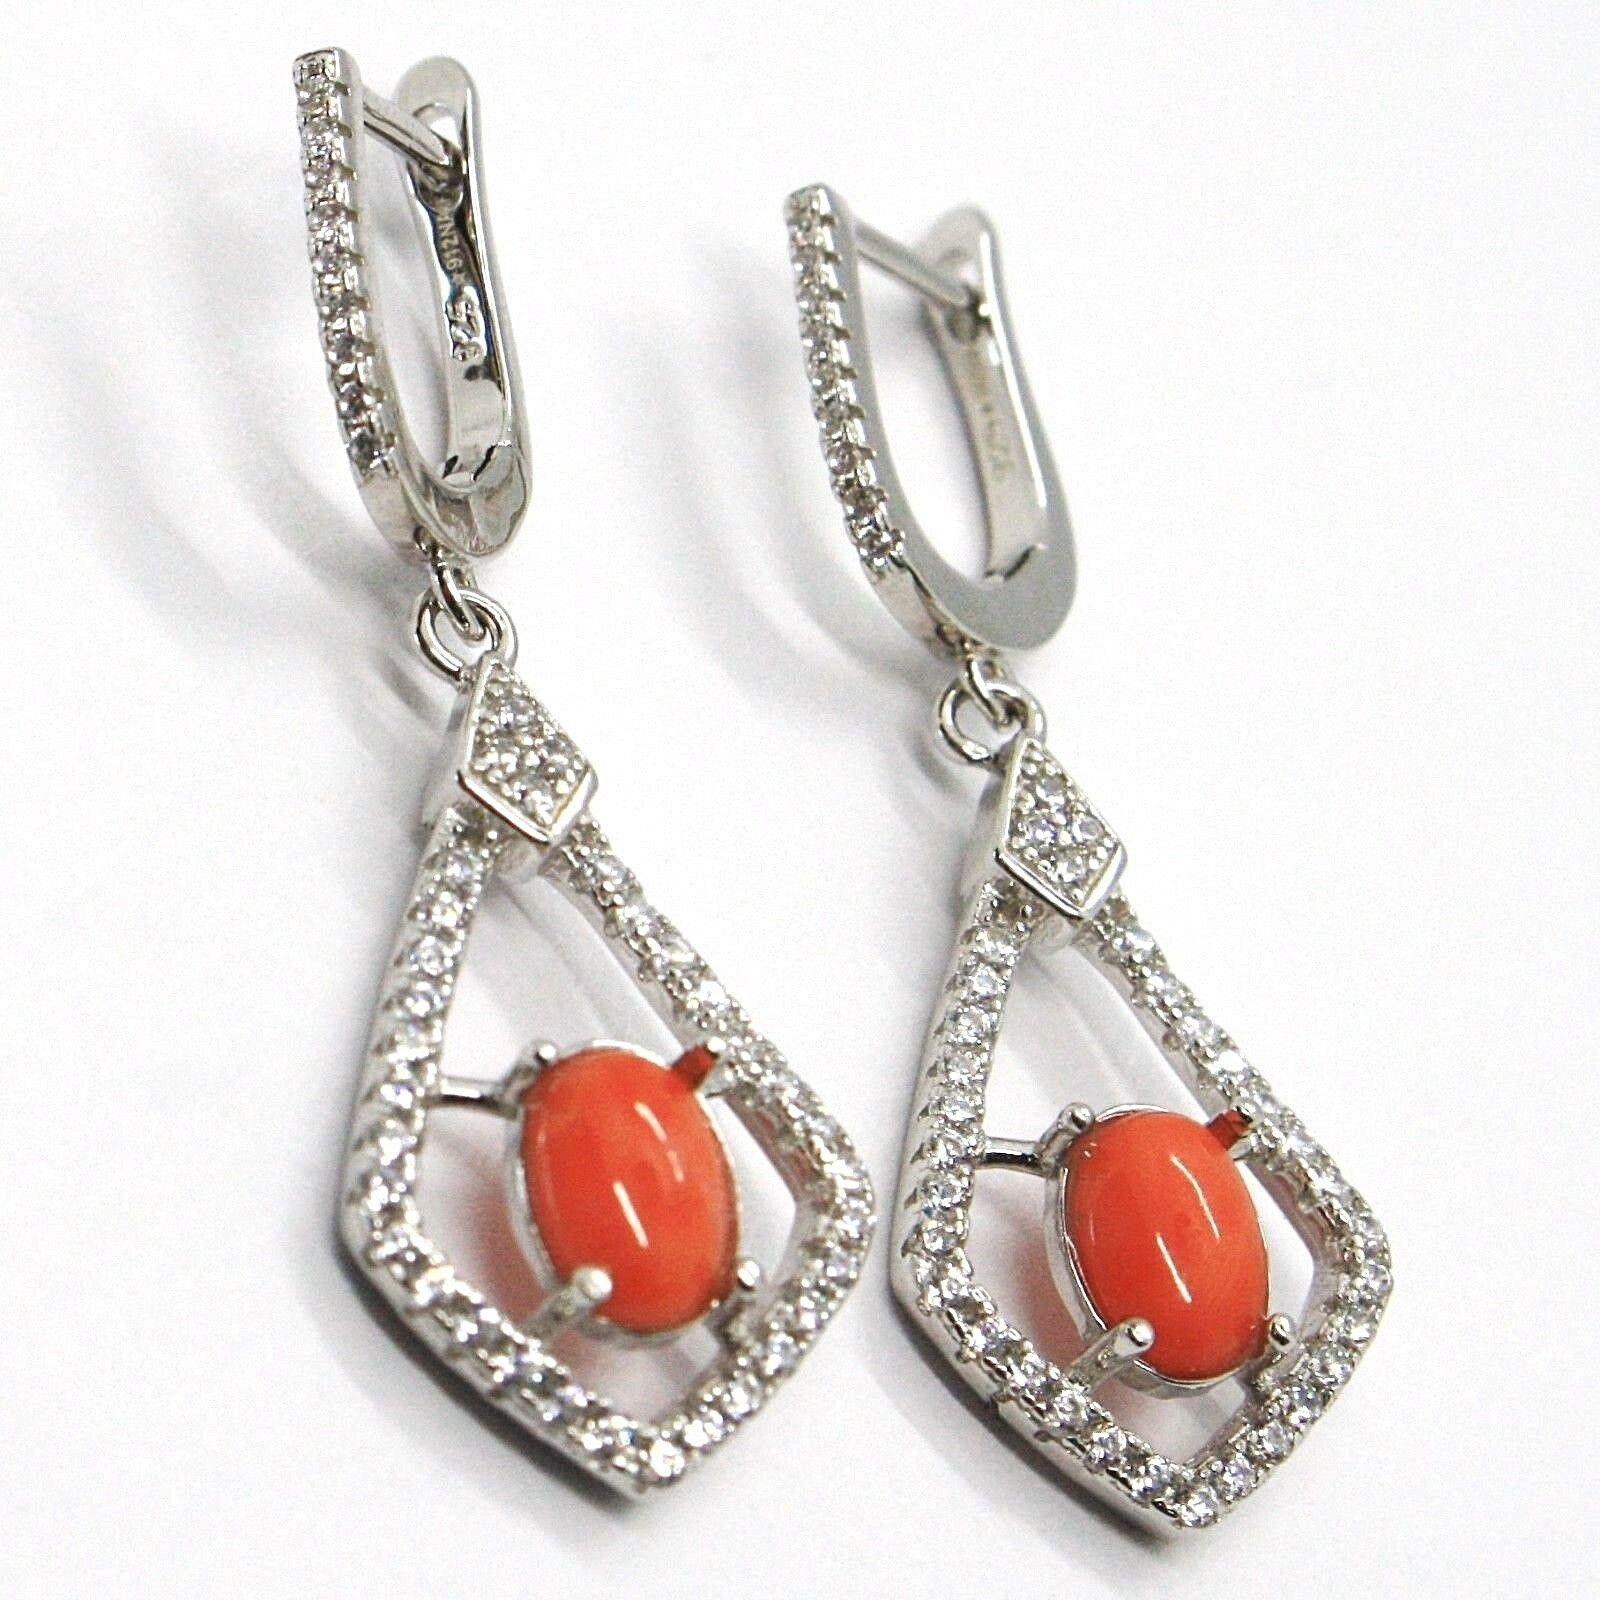 Primary image for Silver Earrings 925, Hanging with Zircon, Red Coral Cabochon, Rhombuses